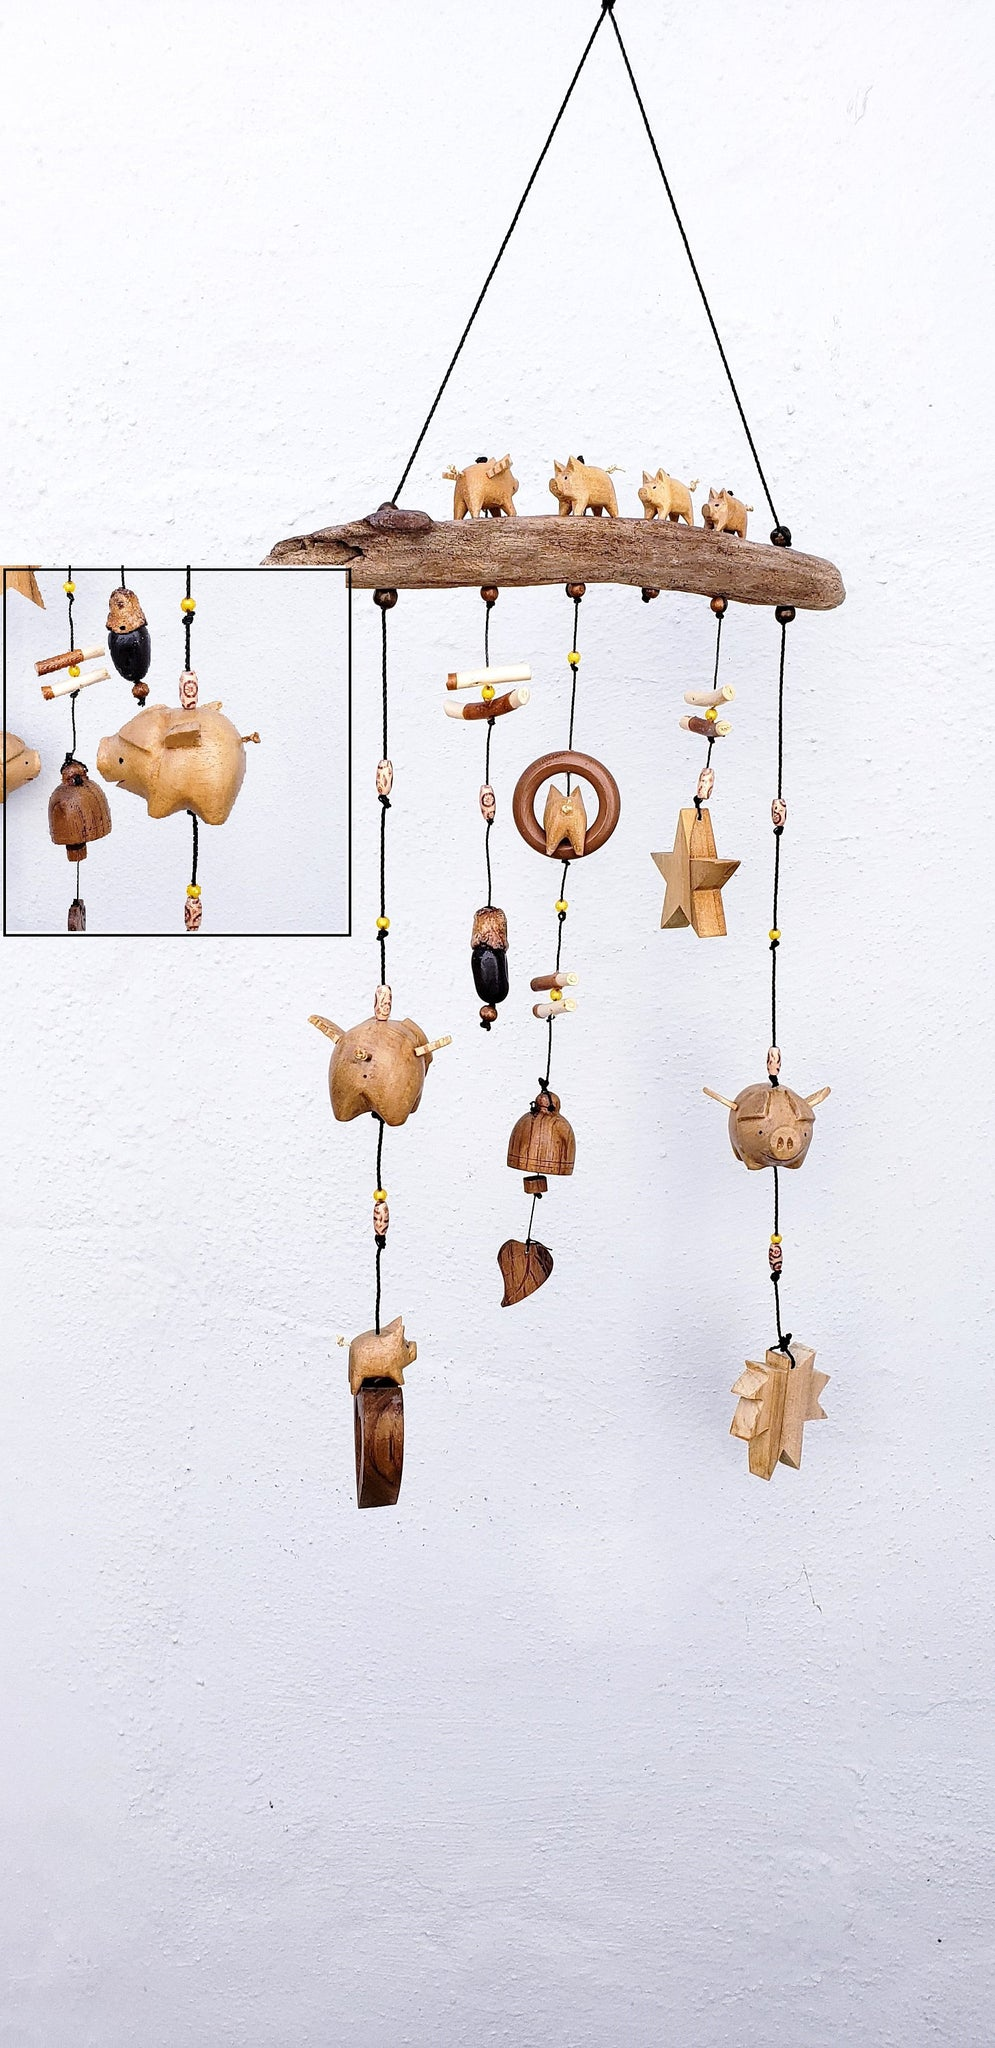 Flying pigs mobile outdoor or indoor decoration ,wood craving UV ,weatherproof.